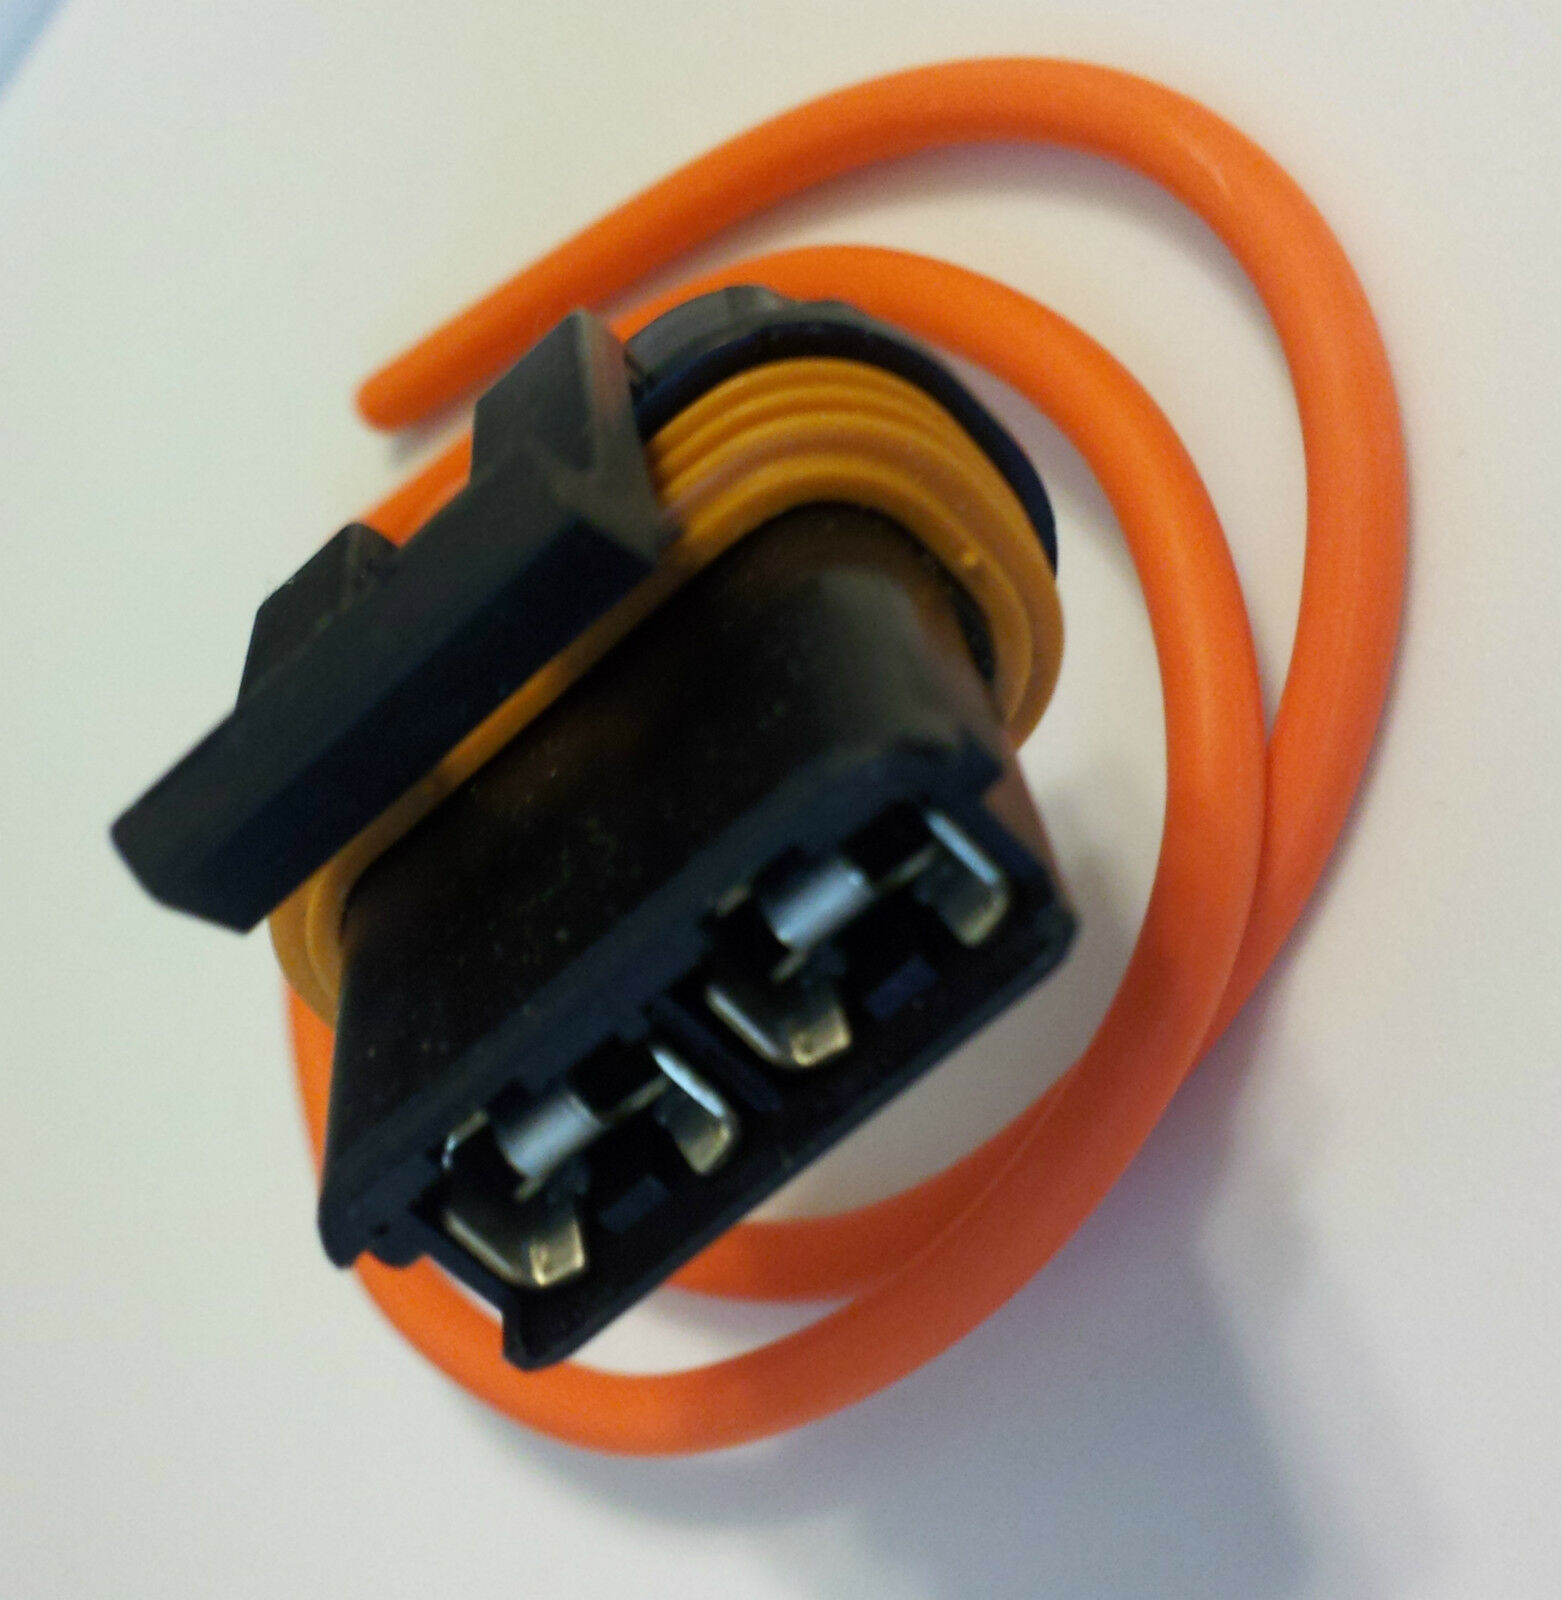 Chevy Gm A C Blower Motor Fan Connector 1985 Up Wire Pigtail Plug Glow Wiring 1 Of 6free Shipping